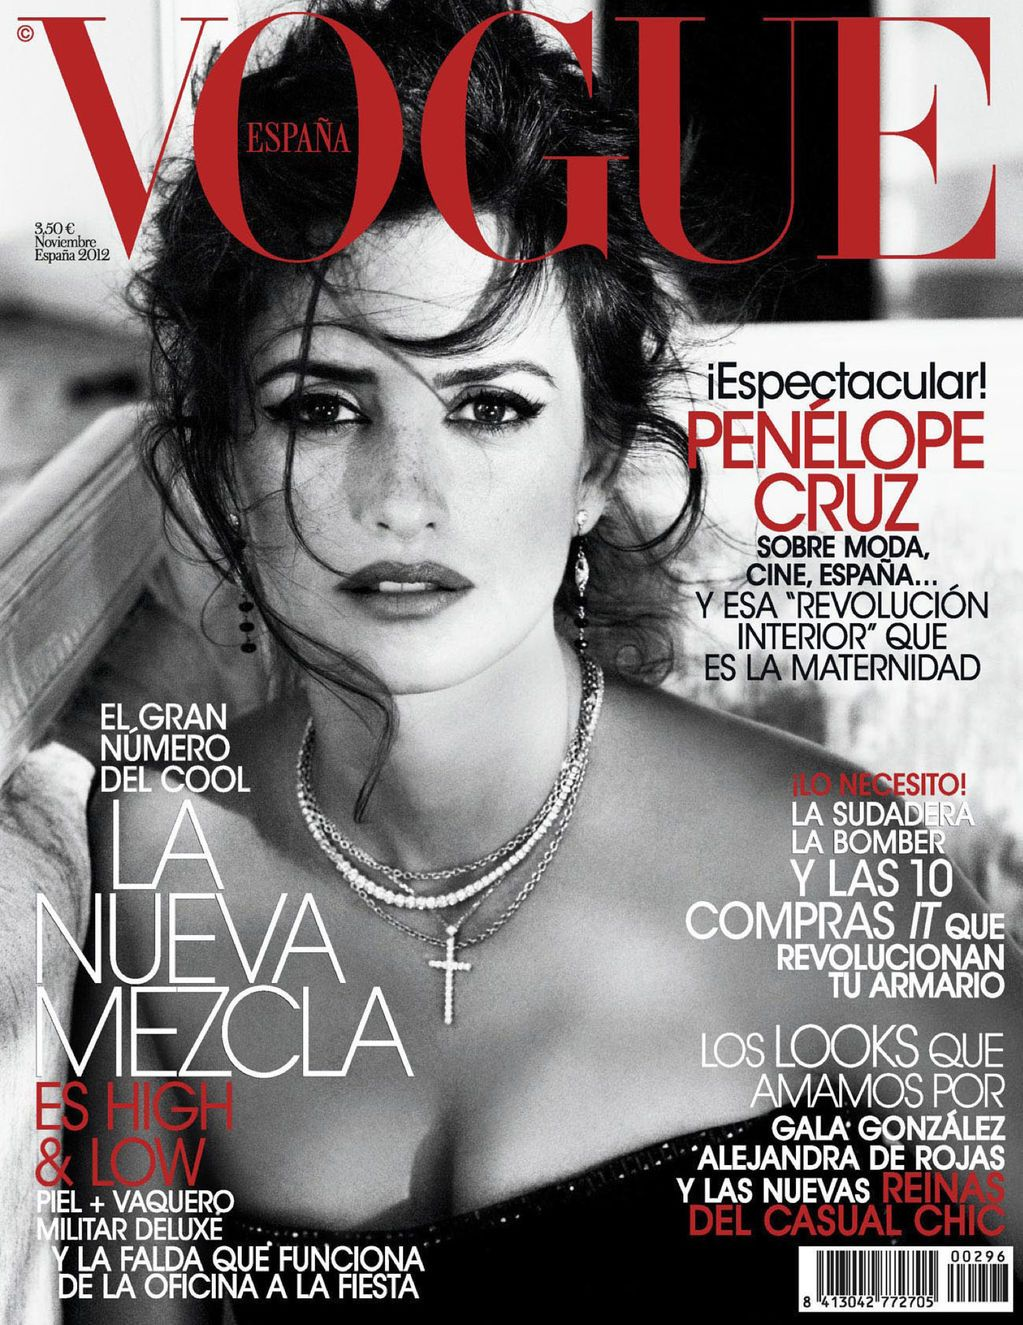 Penelope-Cruz-in-Vogue-Spain-November-2012-1